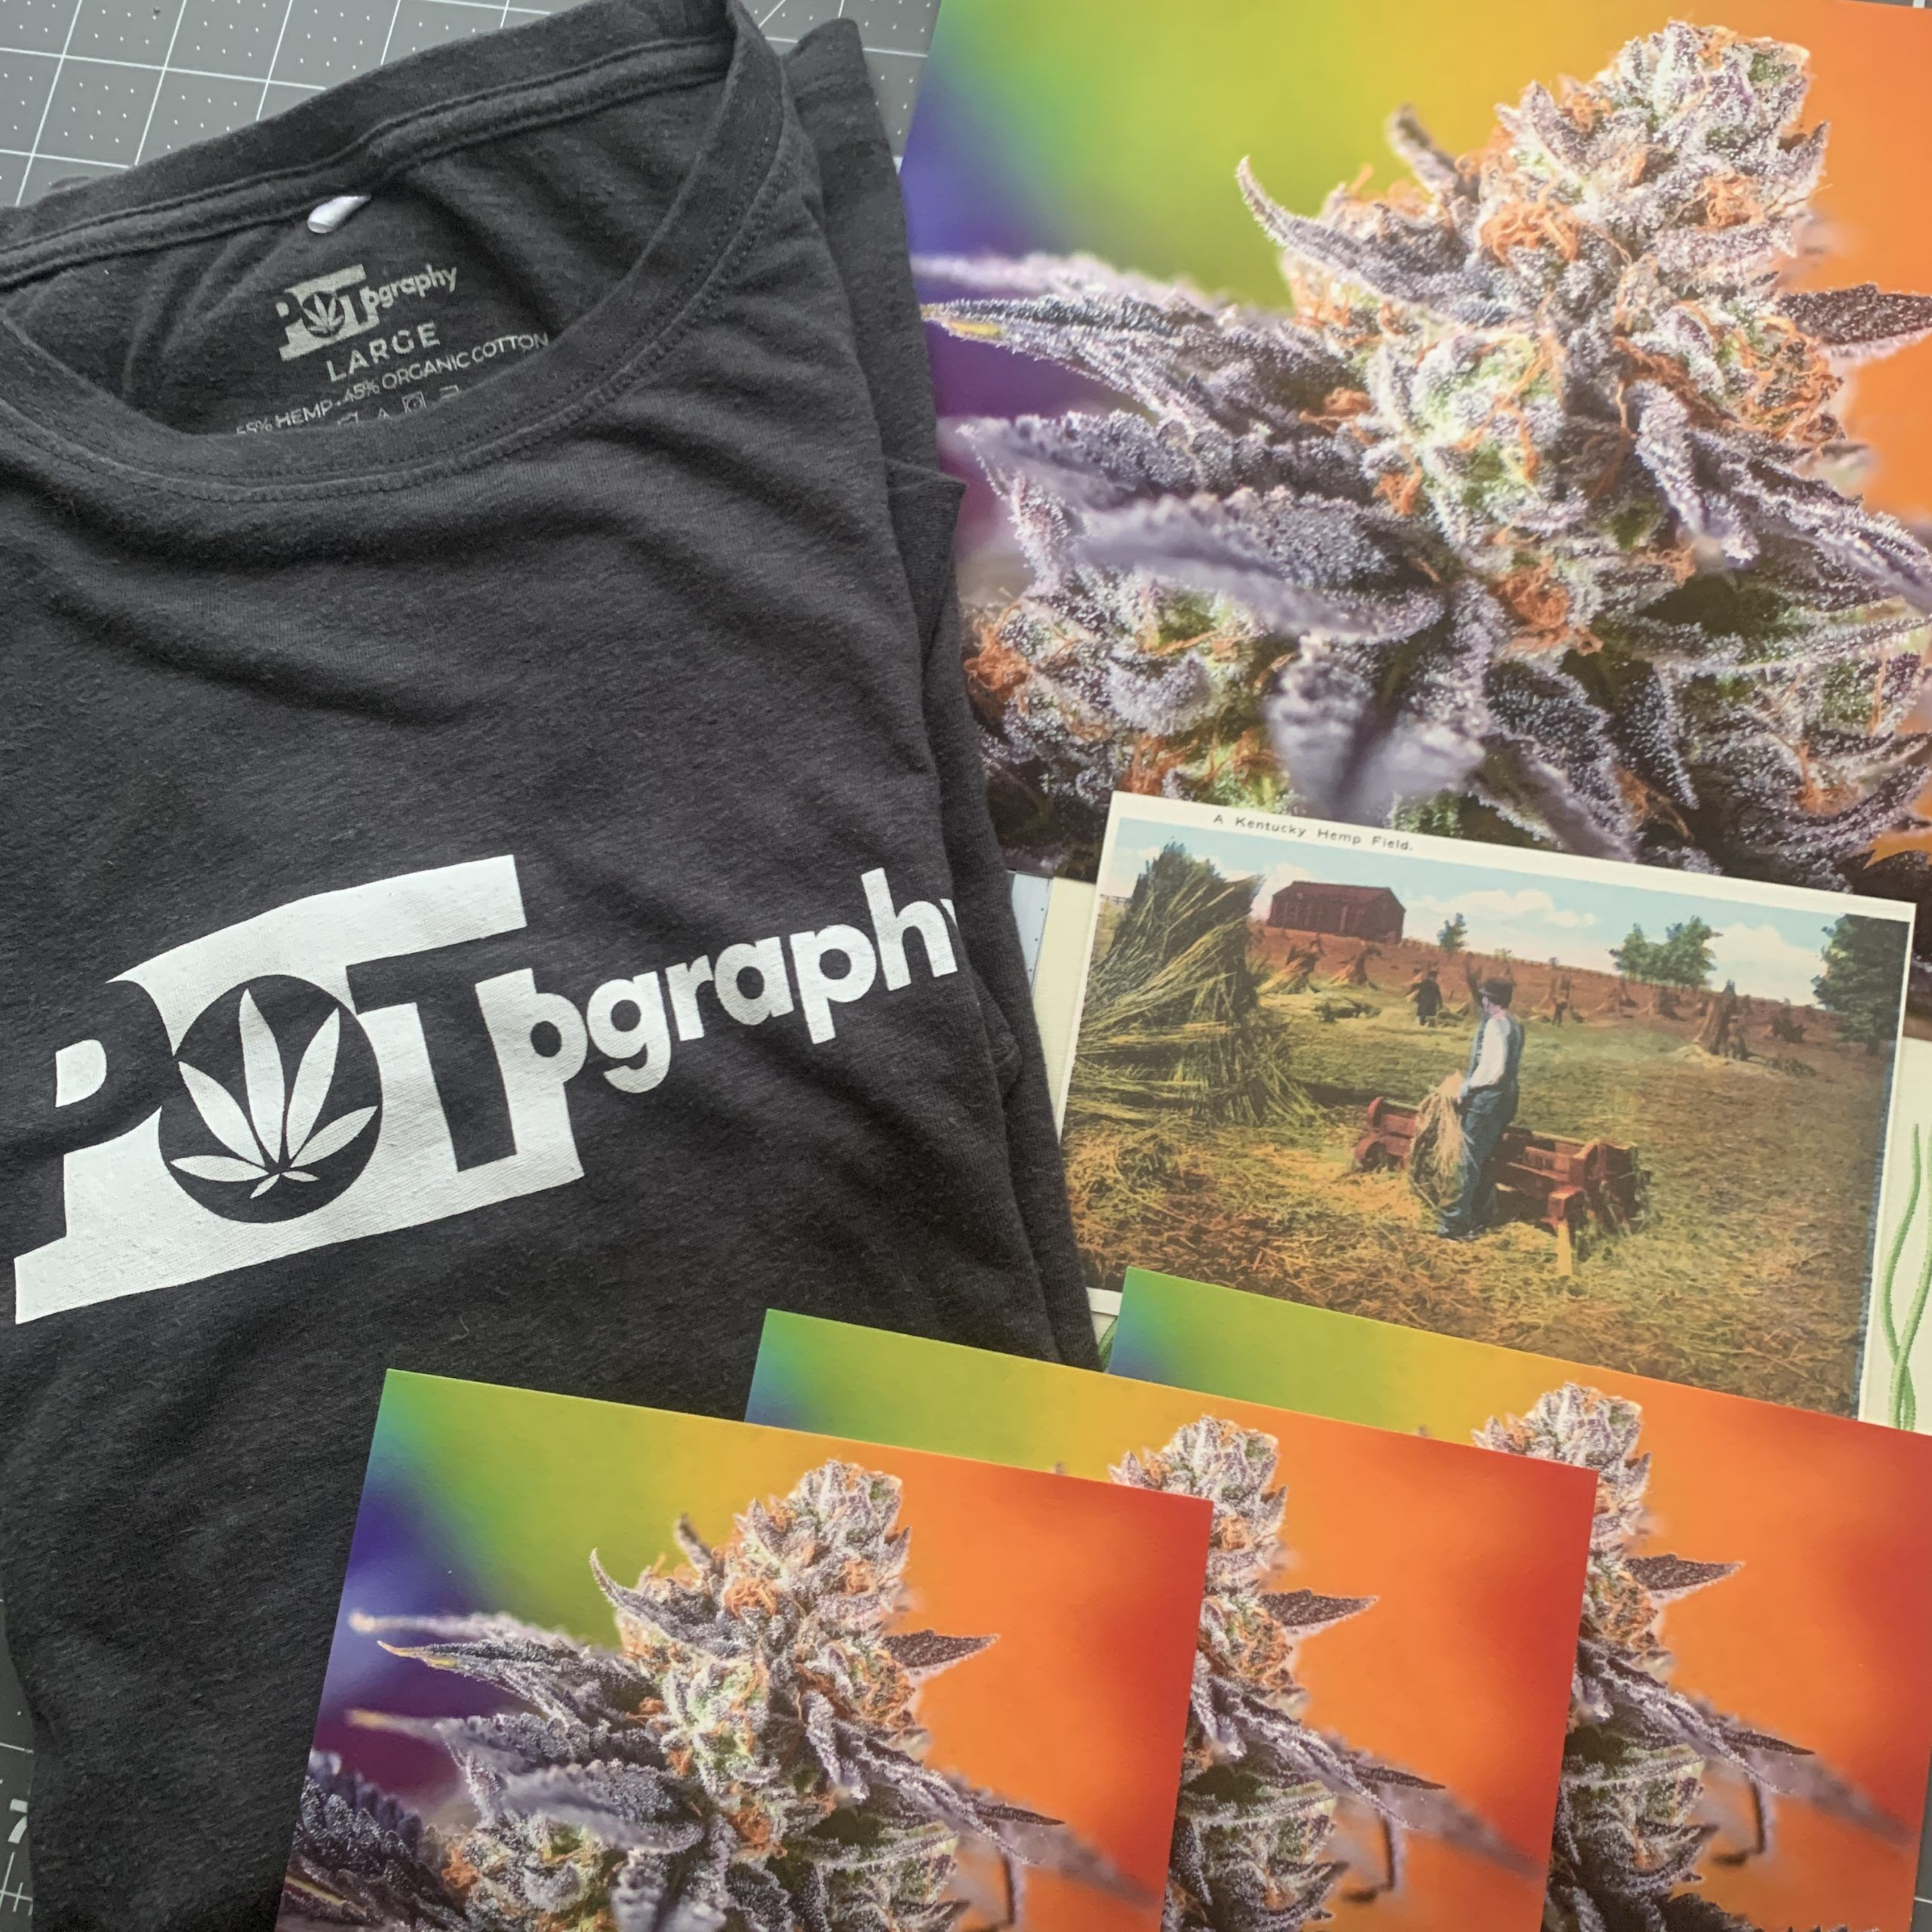 photo contest rules, rules and prizes -may photo contest hemp prize pack